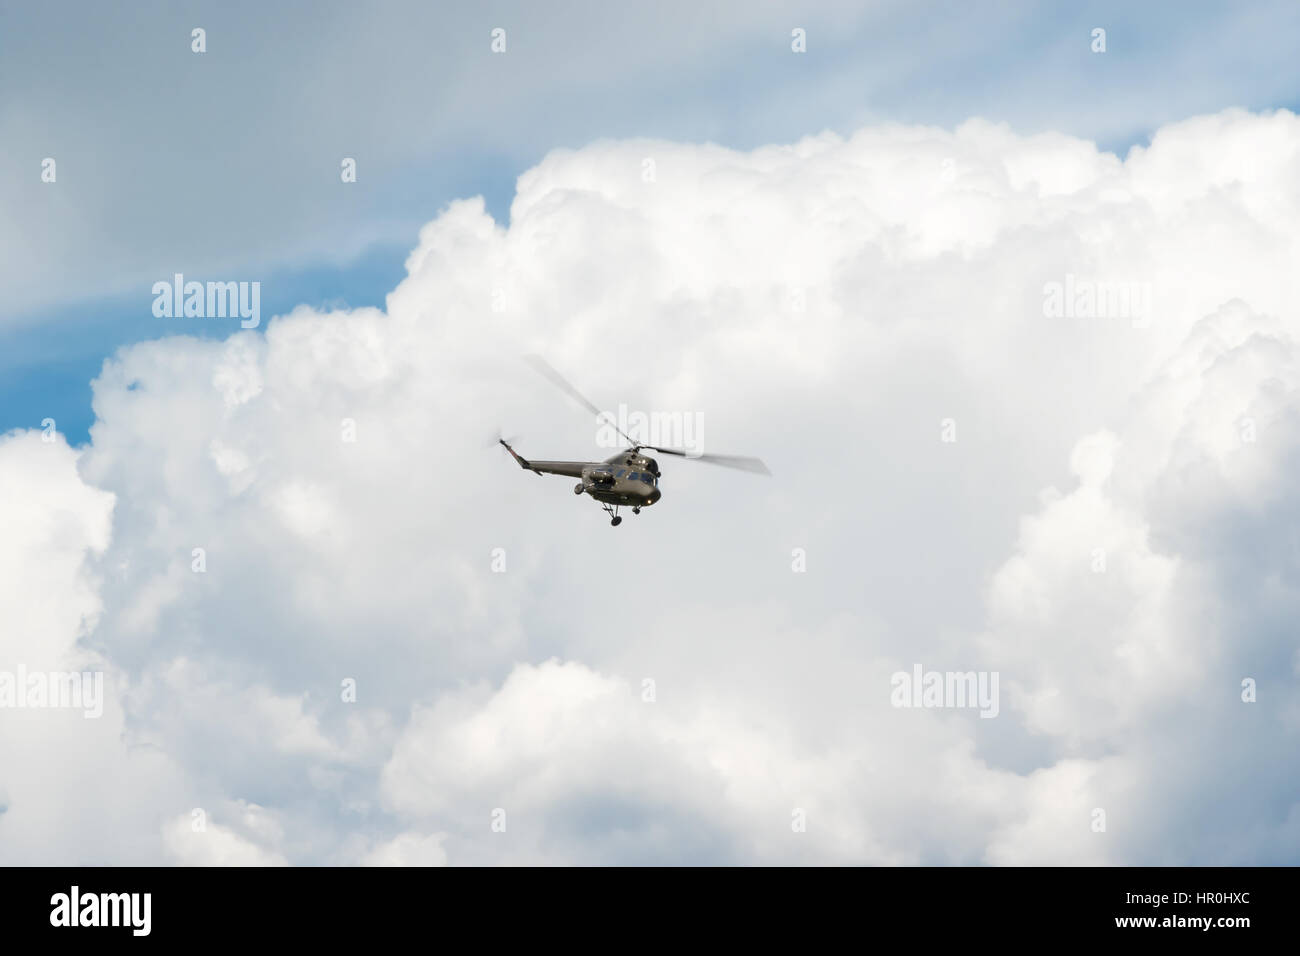 Military khaki helicopter flying in the blue sky with clouds - Stock Image